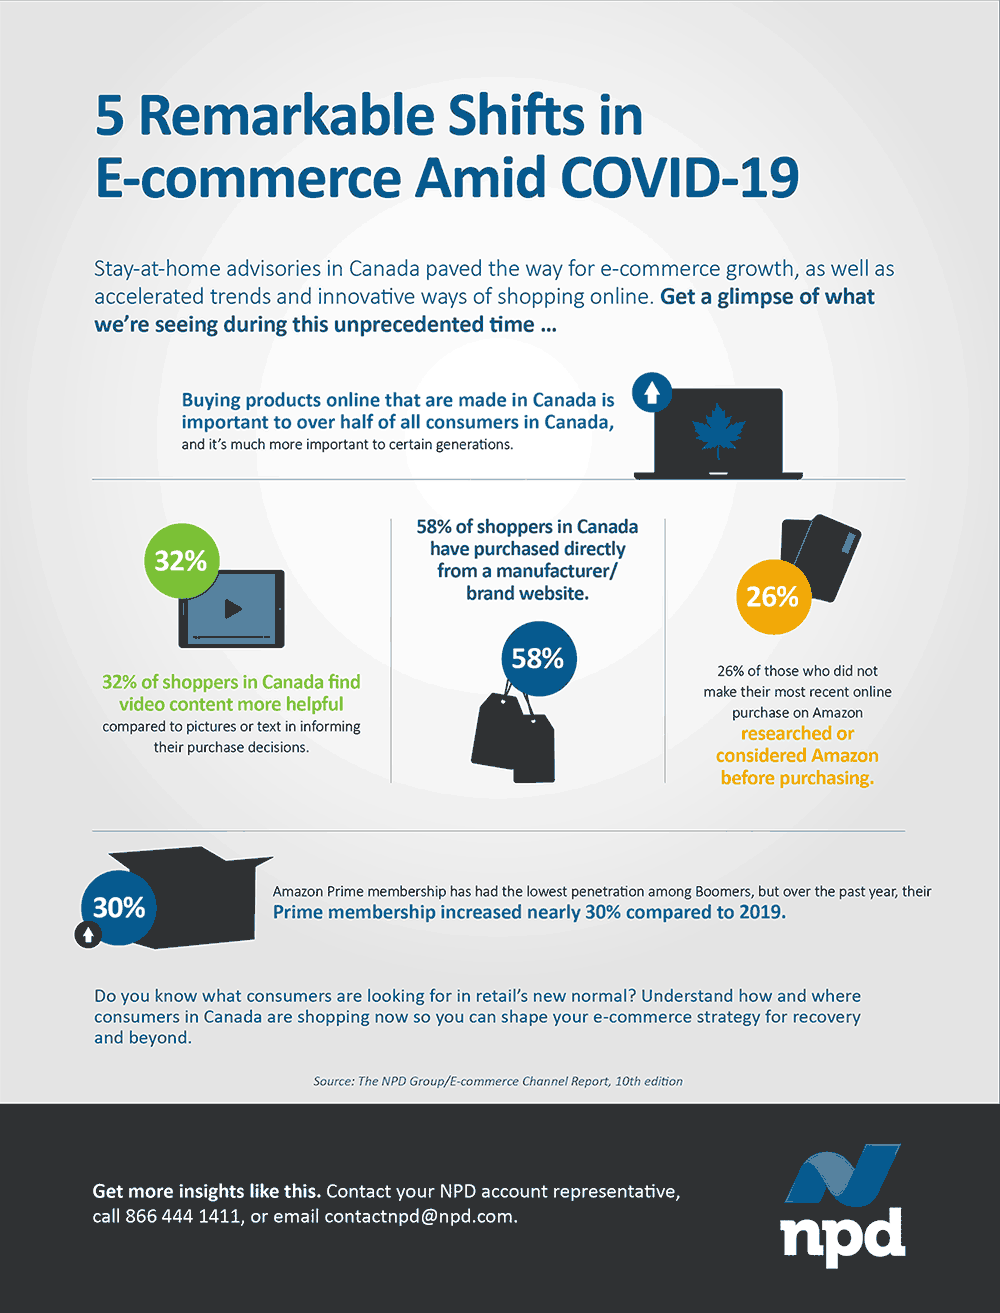 Understand how and where consumers in Canada are shopping to shape your e-commerce strategy for recovery and beyond. Take a look at 5 shifts we've seen in the COVID-19 period.